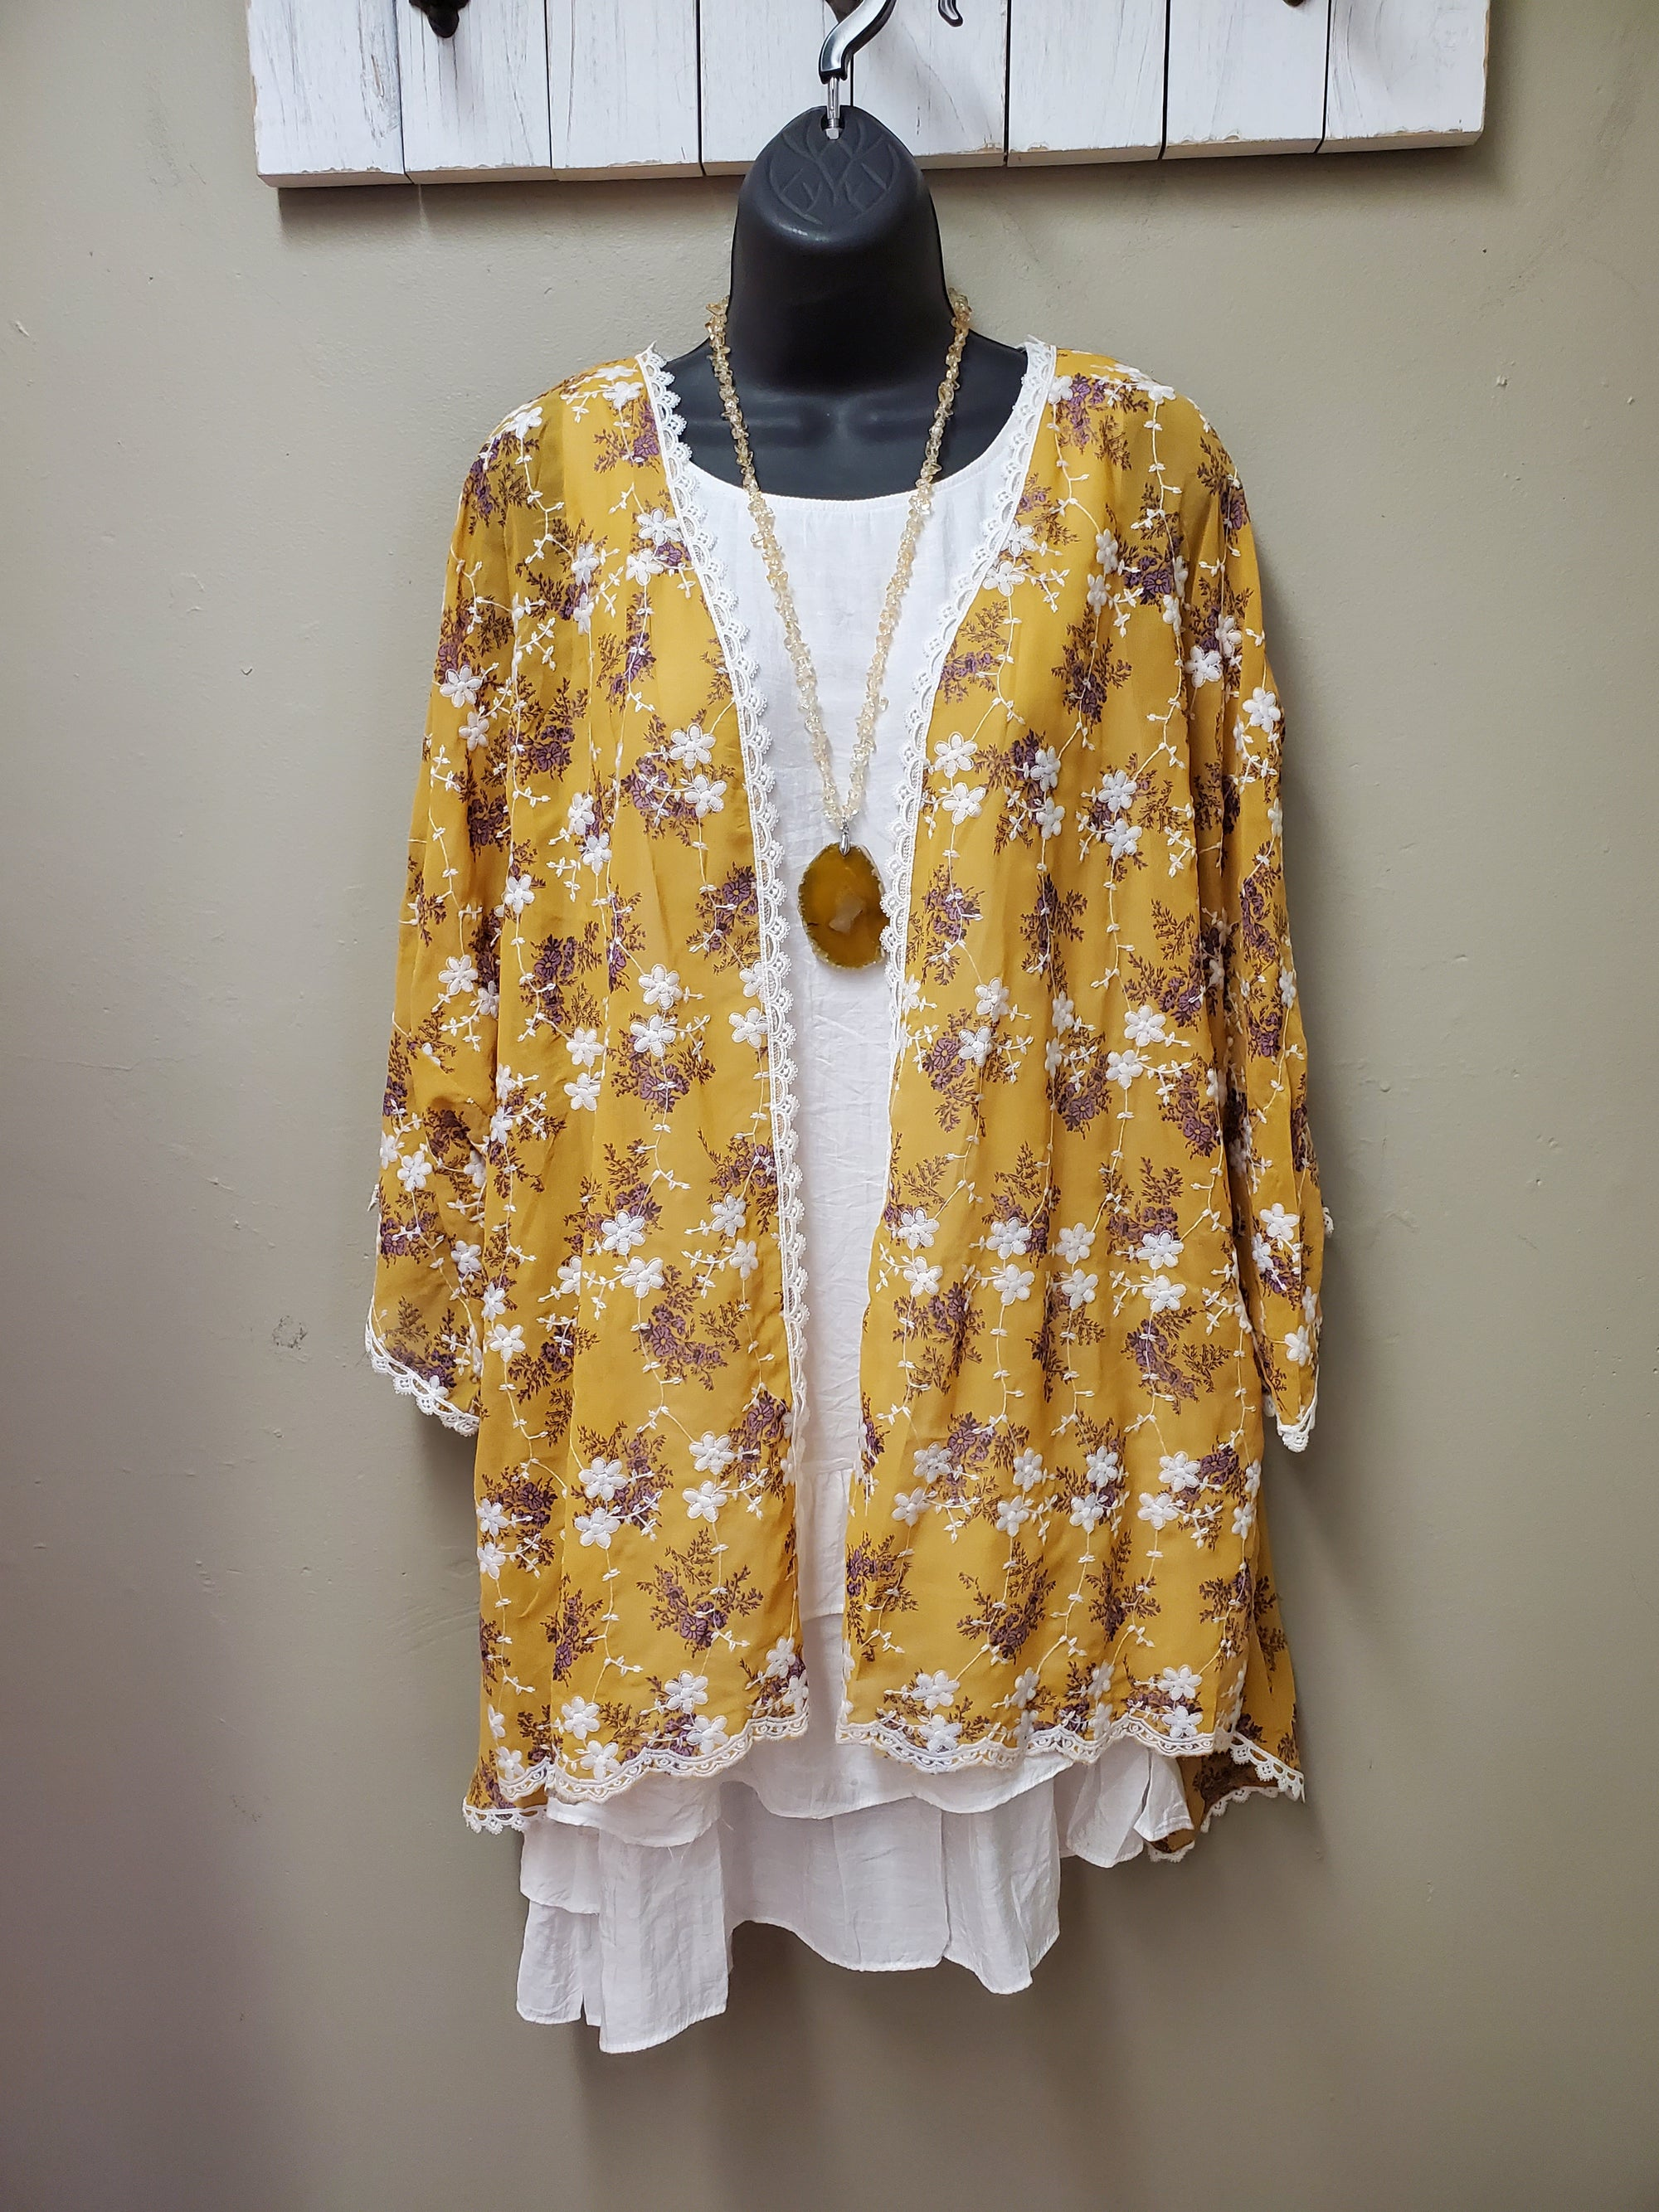 Small Embroidered Floral Motif on Mustard Kimono - You-nique Bou-tique